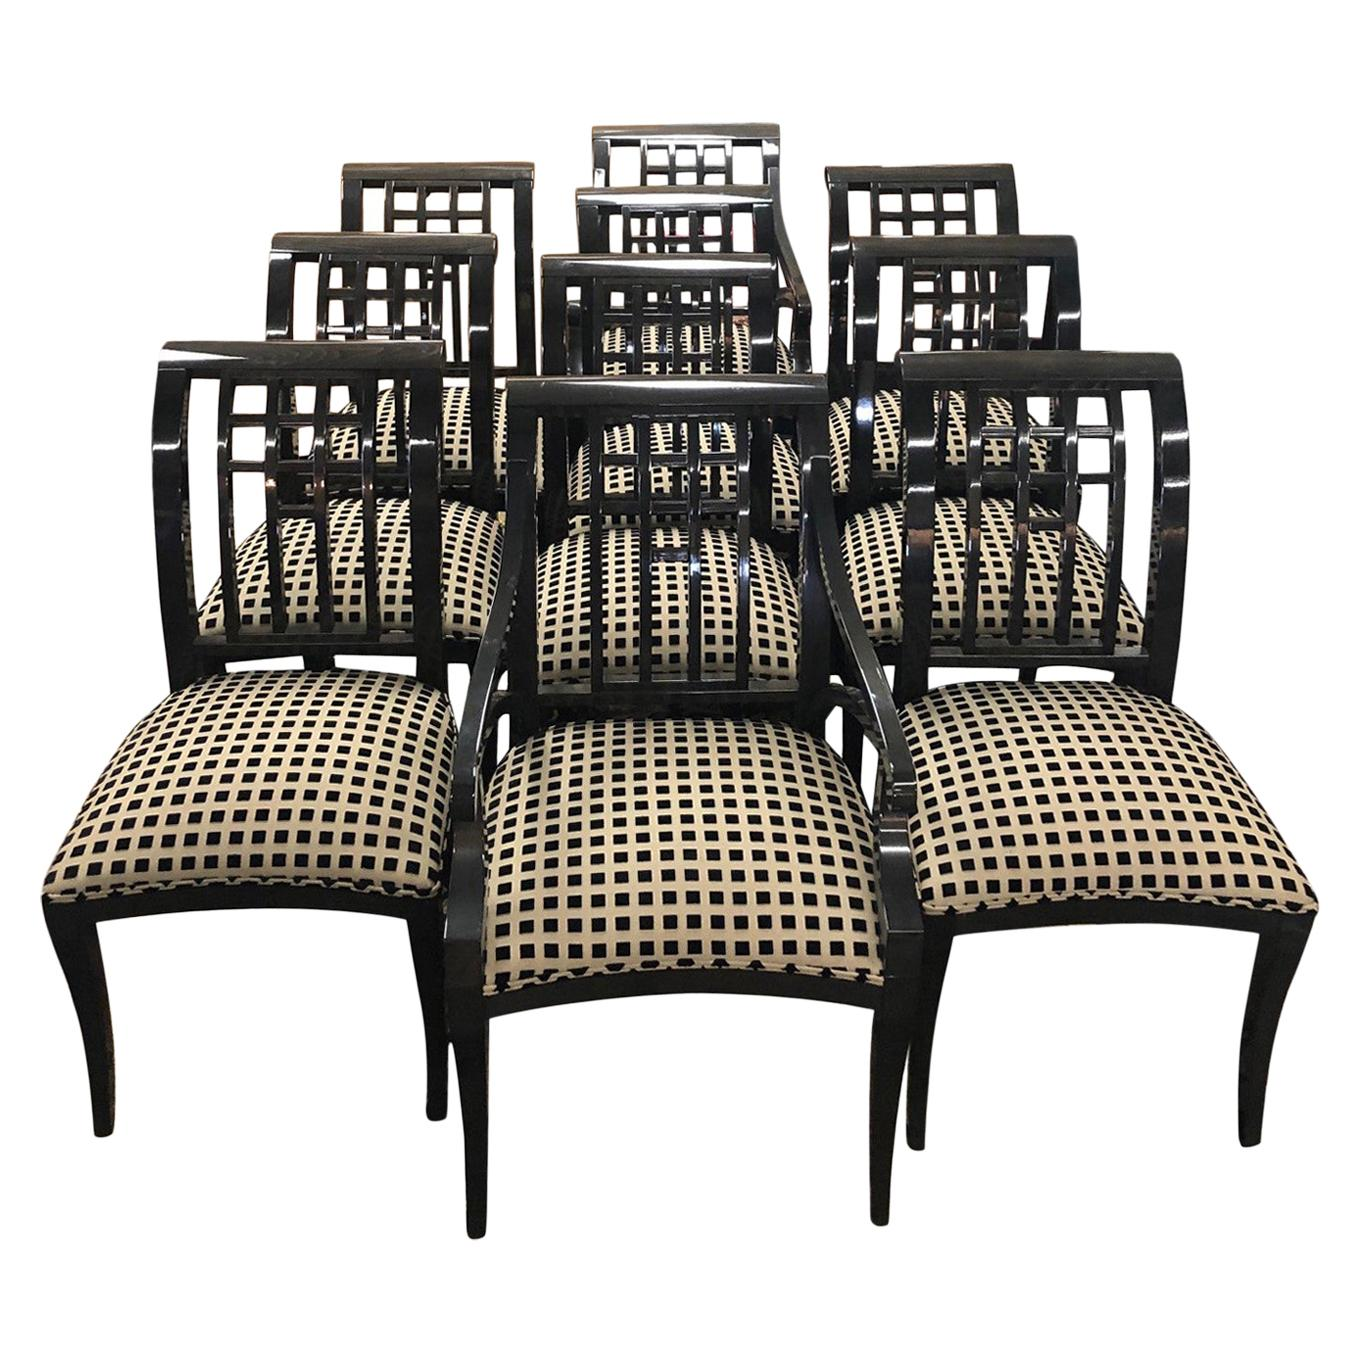 Ten Italian Dining Chairs in Lacquered Wood and Fabric by Pietro Costantini